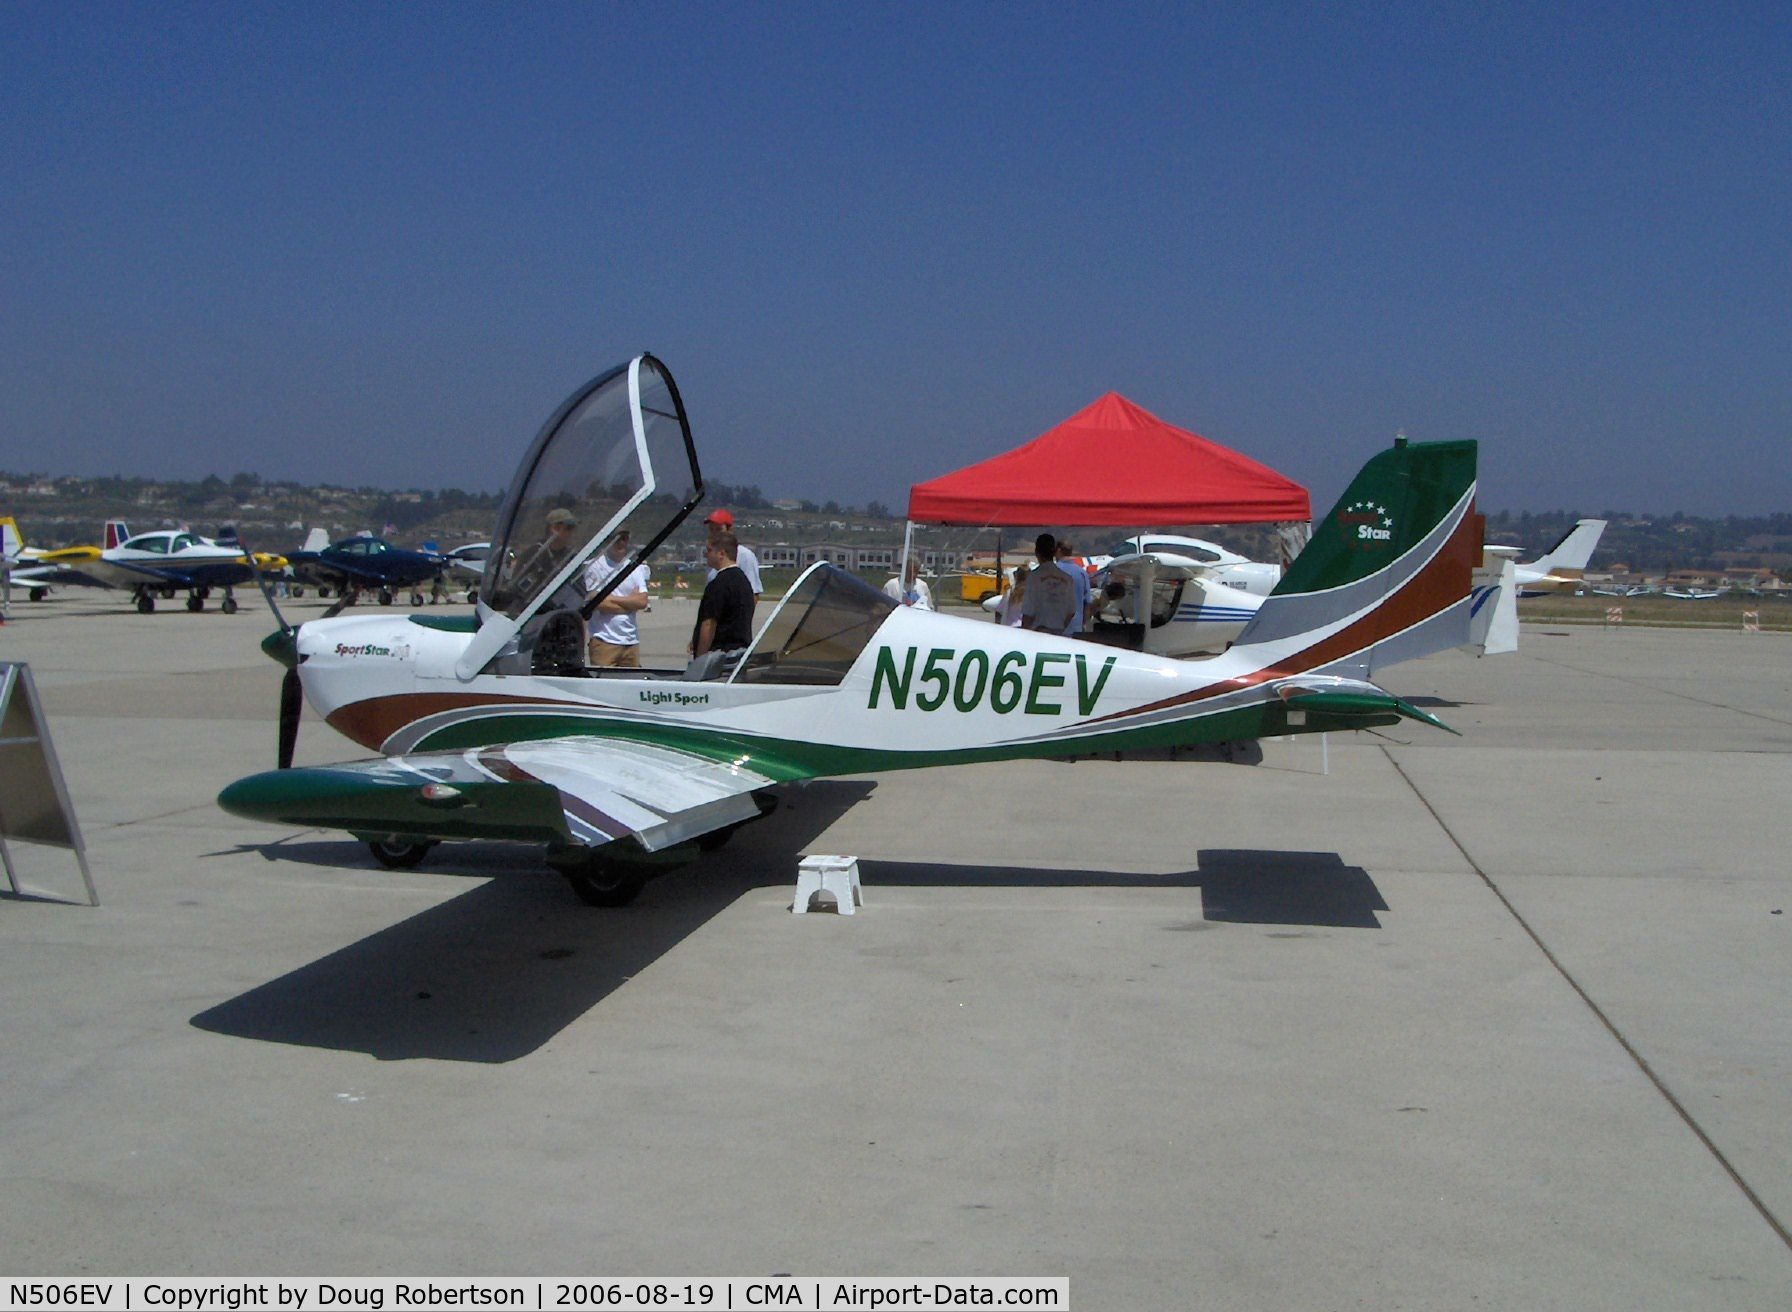 N506EV, 2006 Evektor-Aerotechnik Sportstar C/N 2006 0506, 2006 Evektor-Aerotechnik EV-97 SPORTSTAR, Rotax power, Light Sport Aircraft, the first LSA model approved by the USA FAA was the SPORTSTAR, called EUROSTAR in Europe with over 400 flying worldwide.